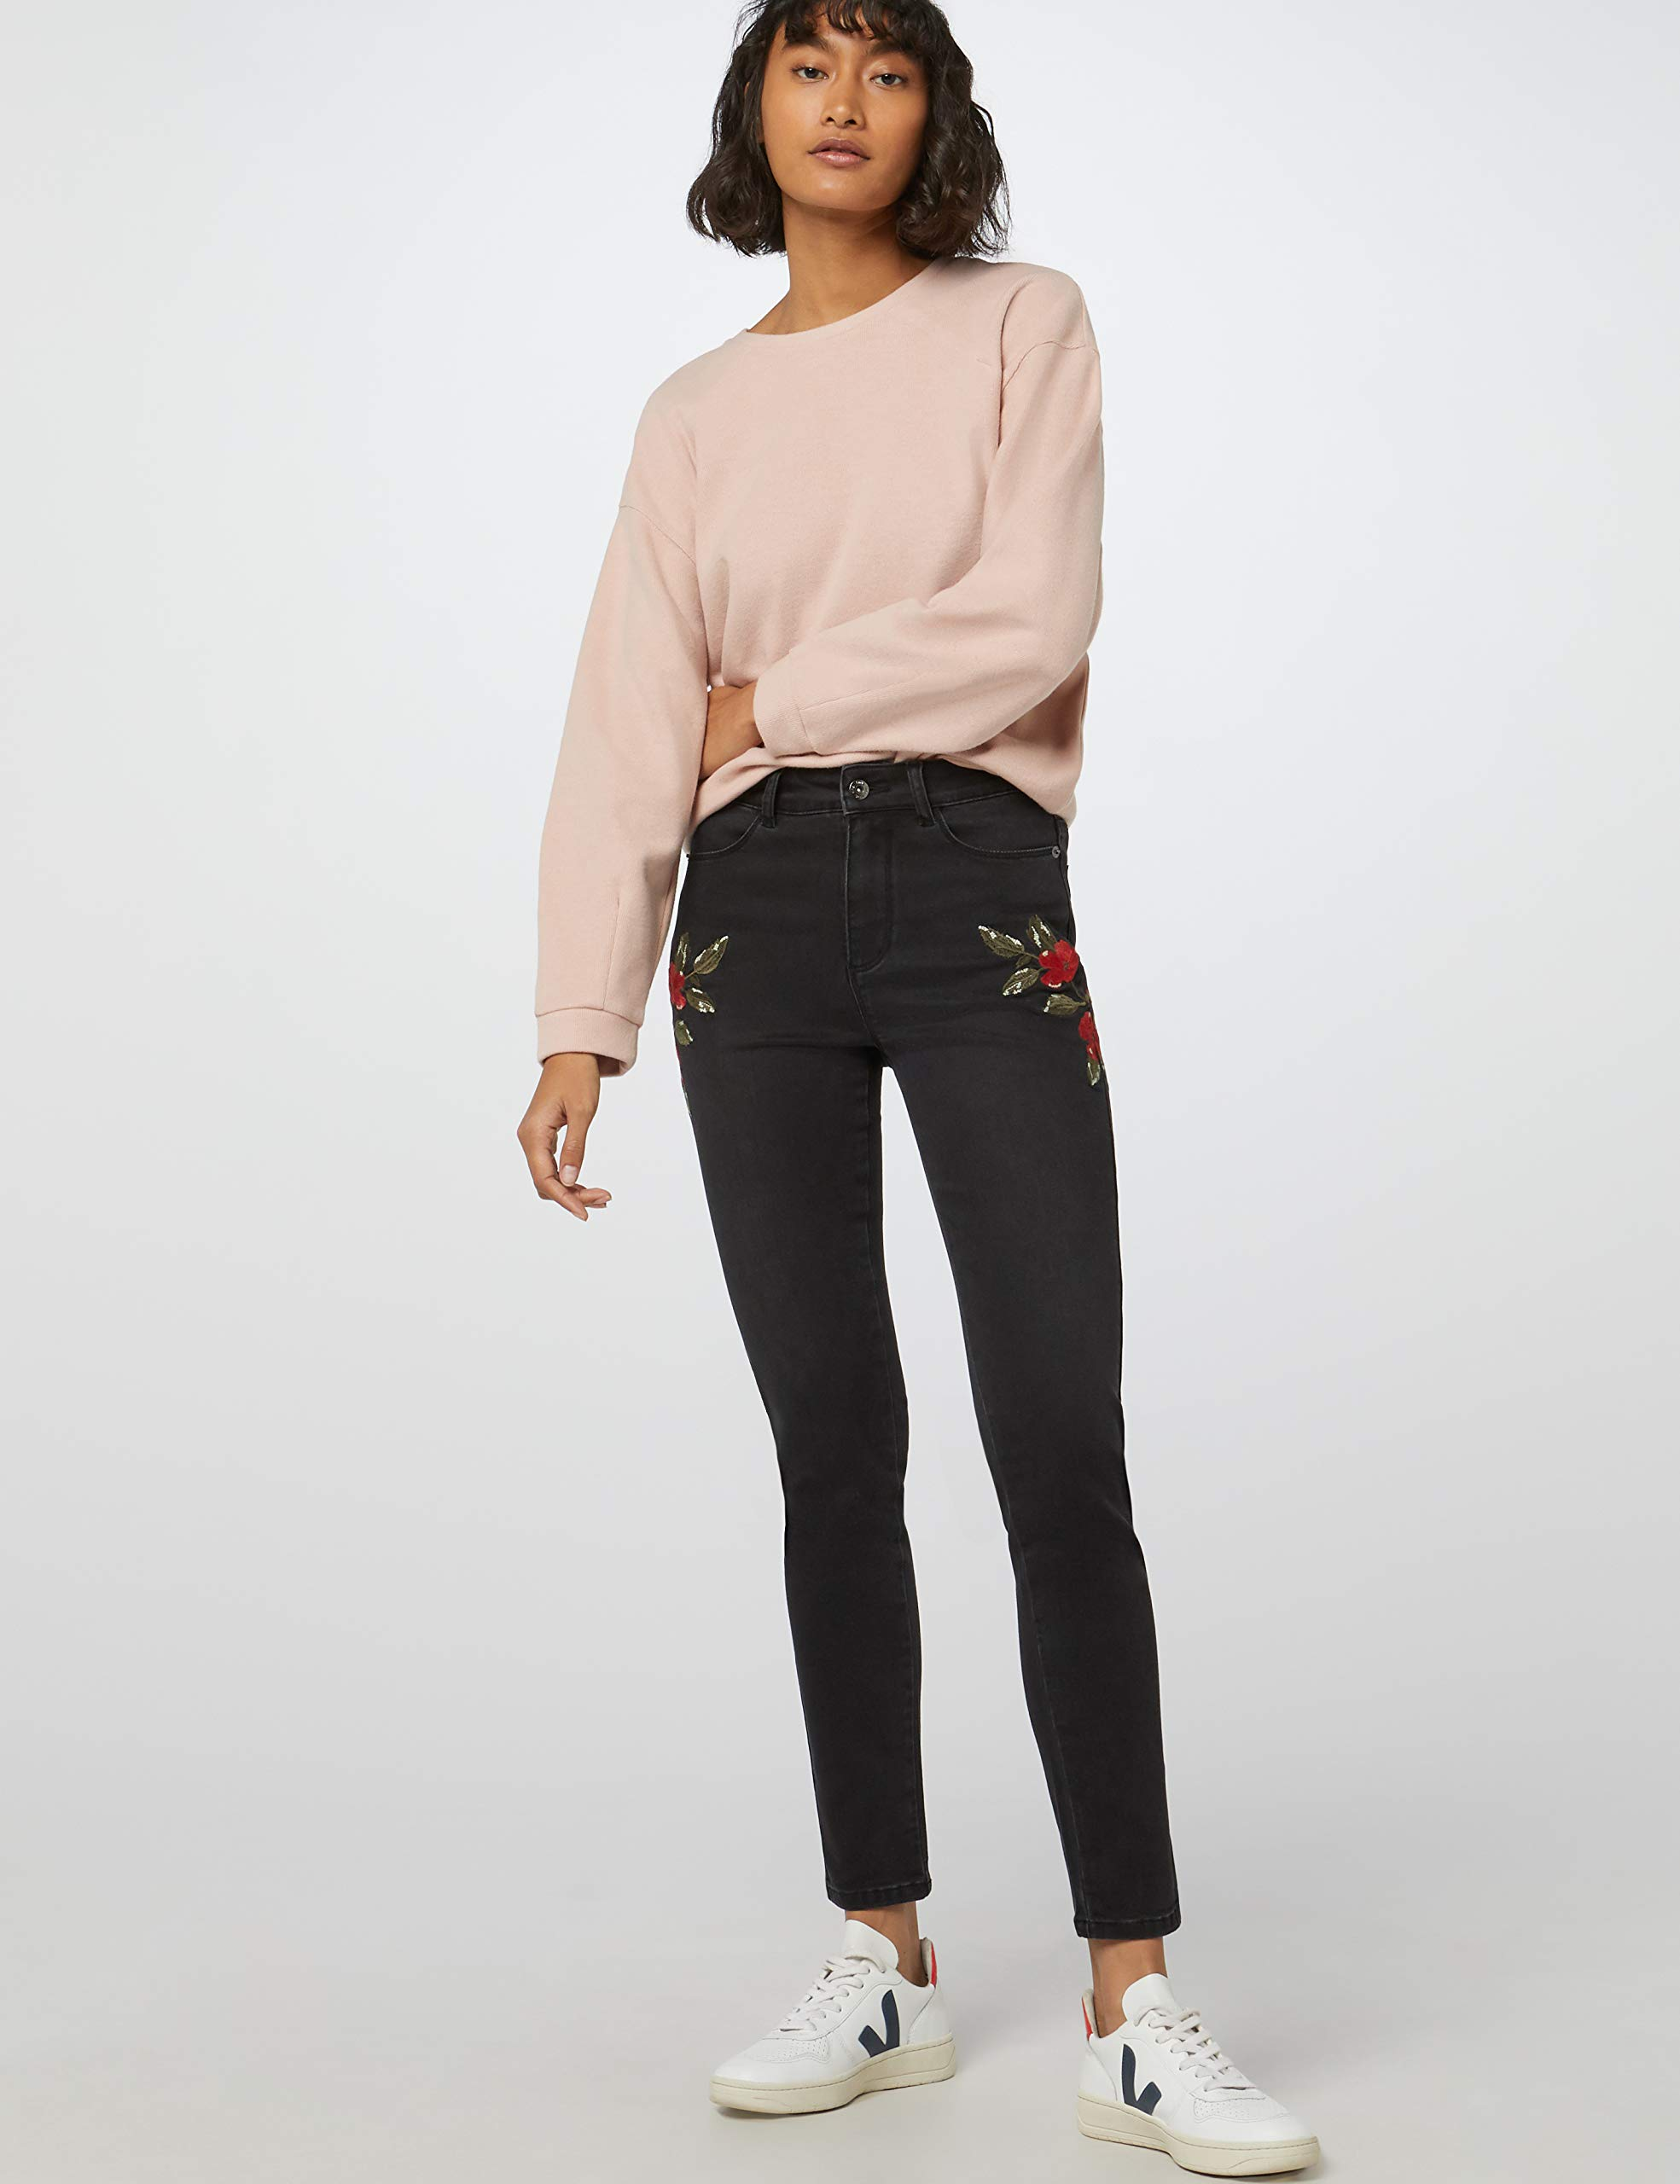 Find slim jeans for women